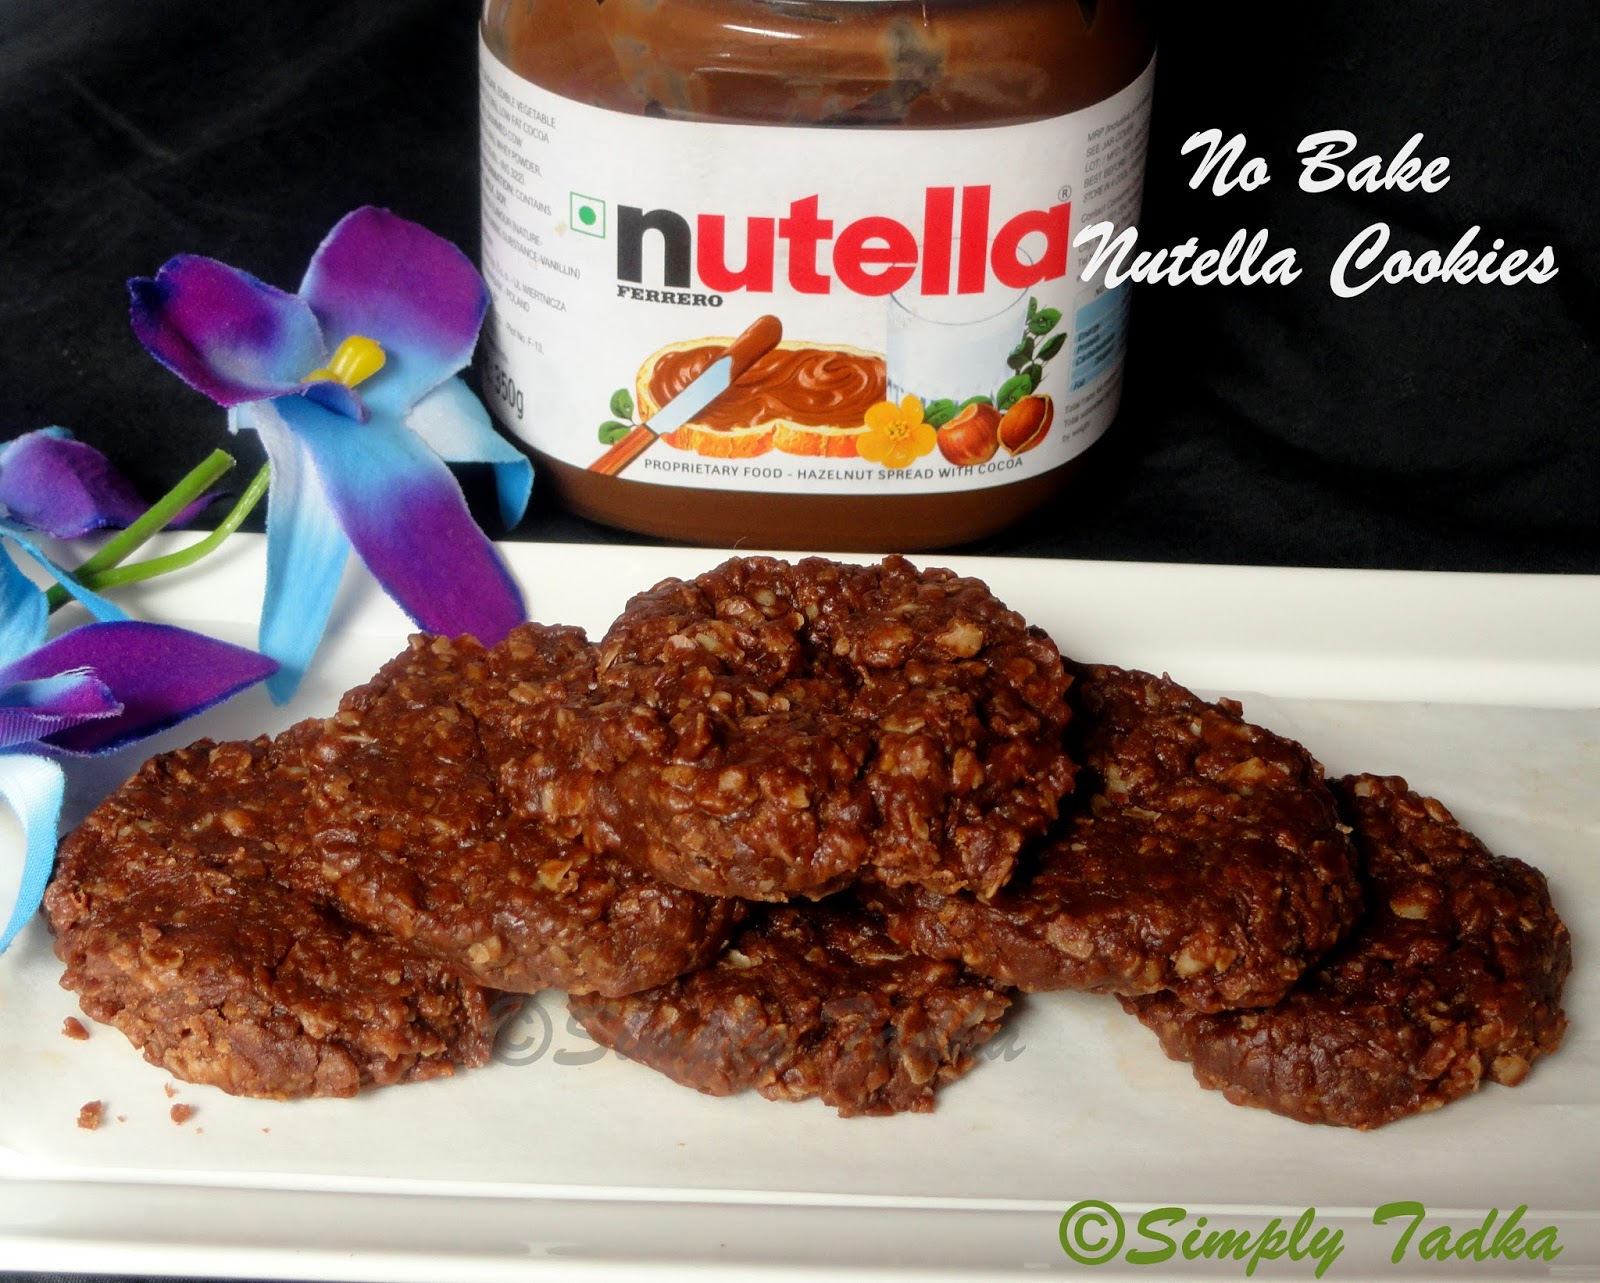 No Bake Nutella Oats Cookies ~ Simply TADKA